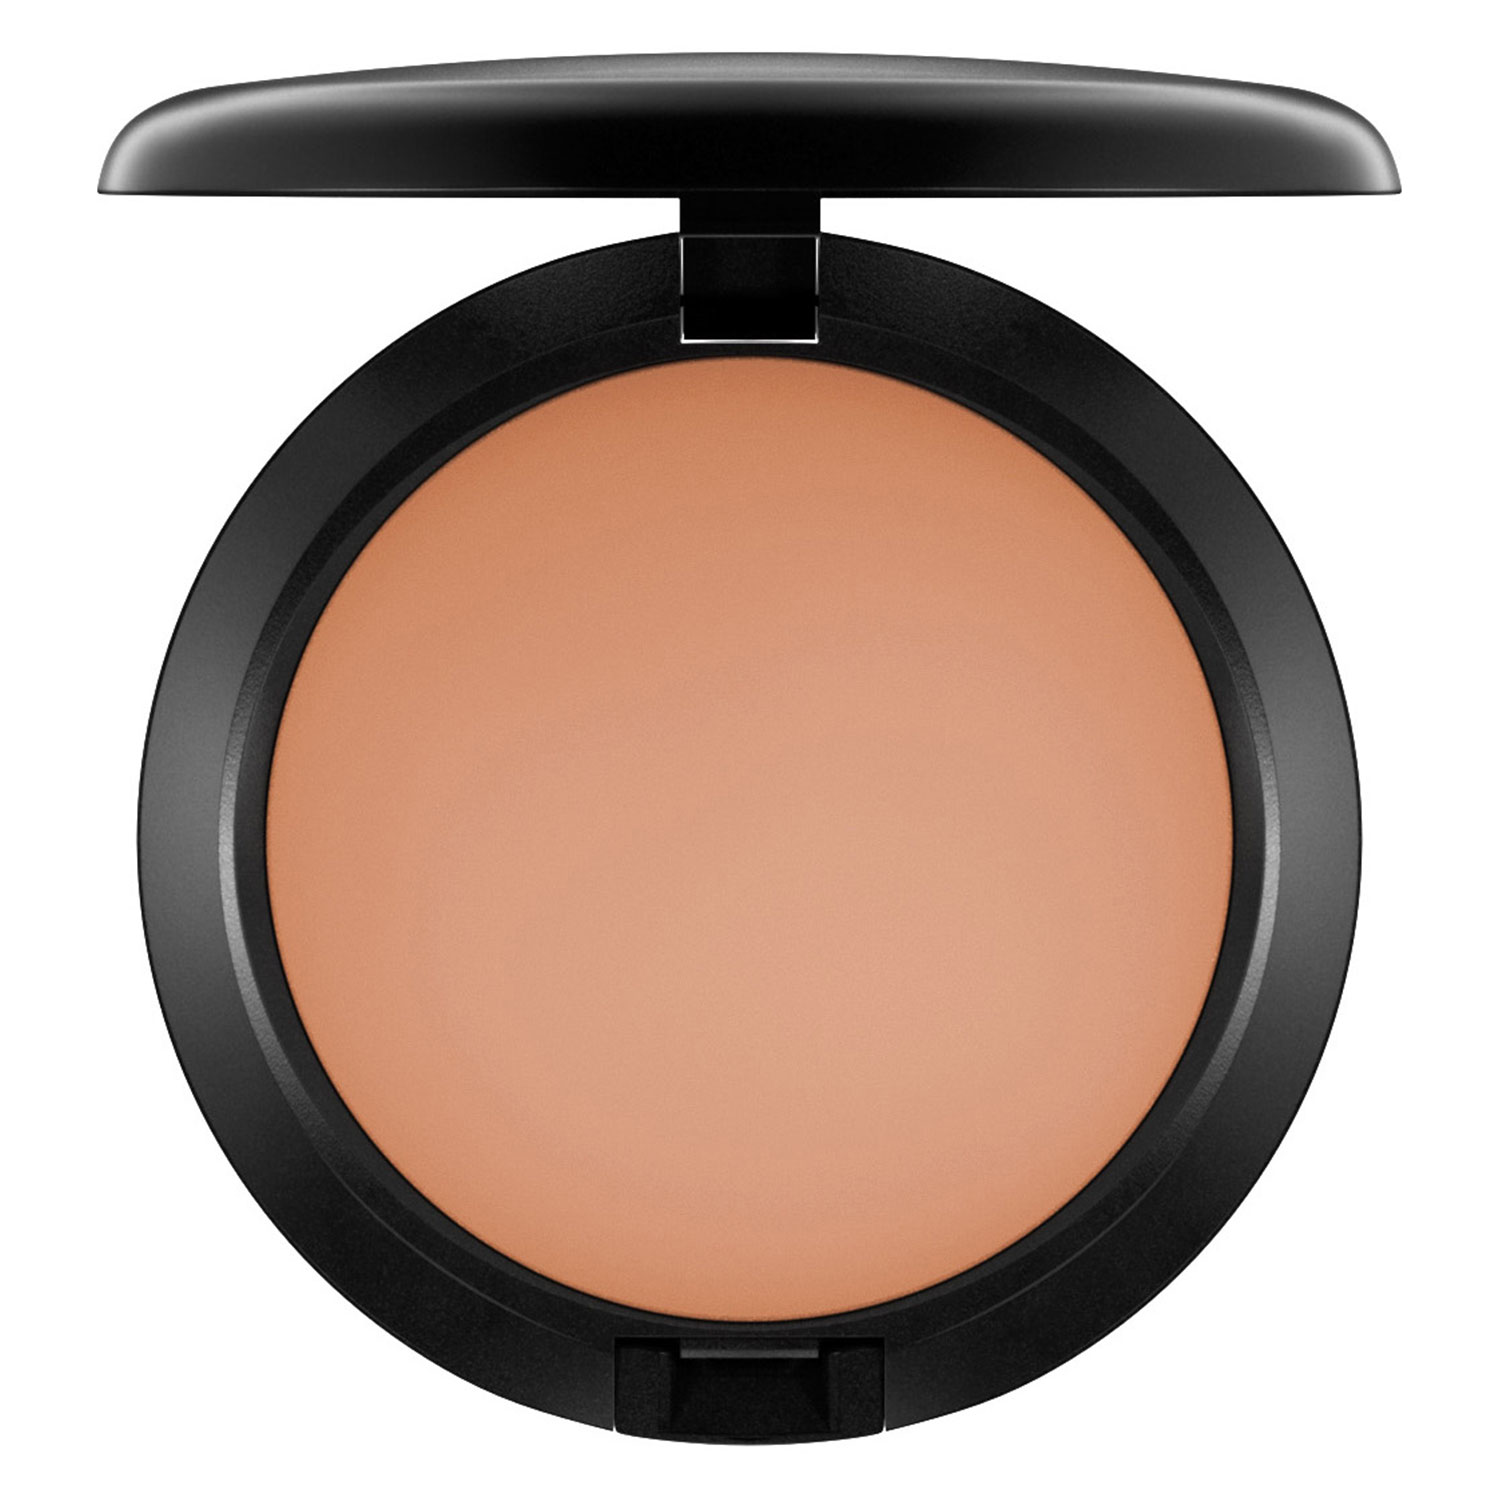 M·A·C Bronzing Powder - Bronze